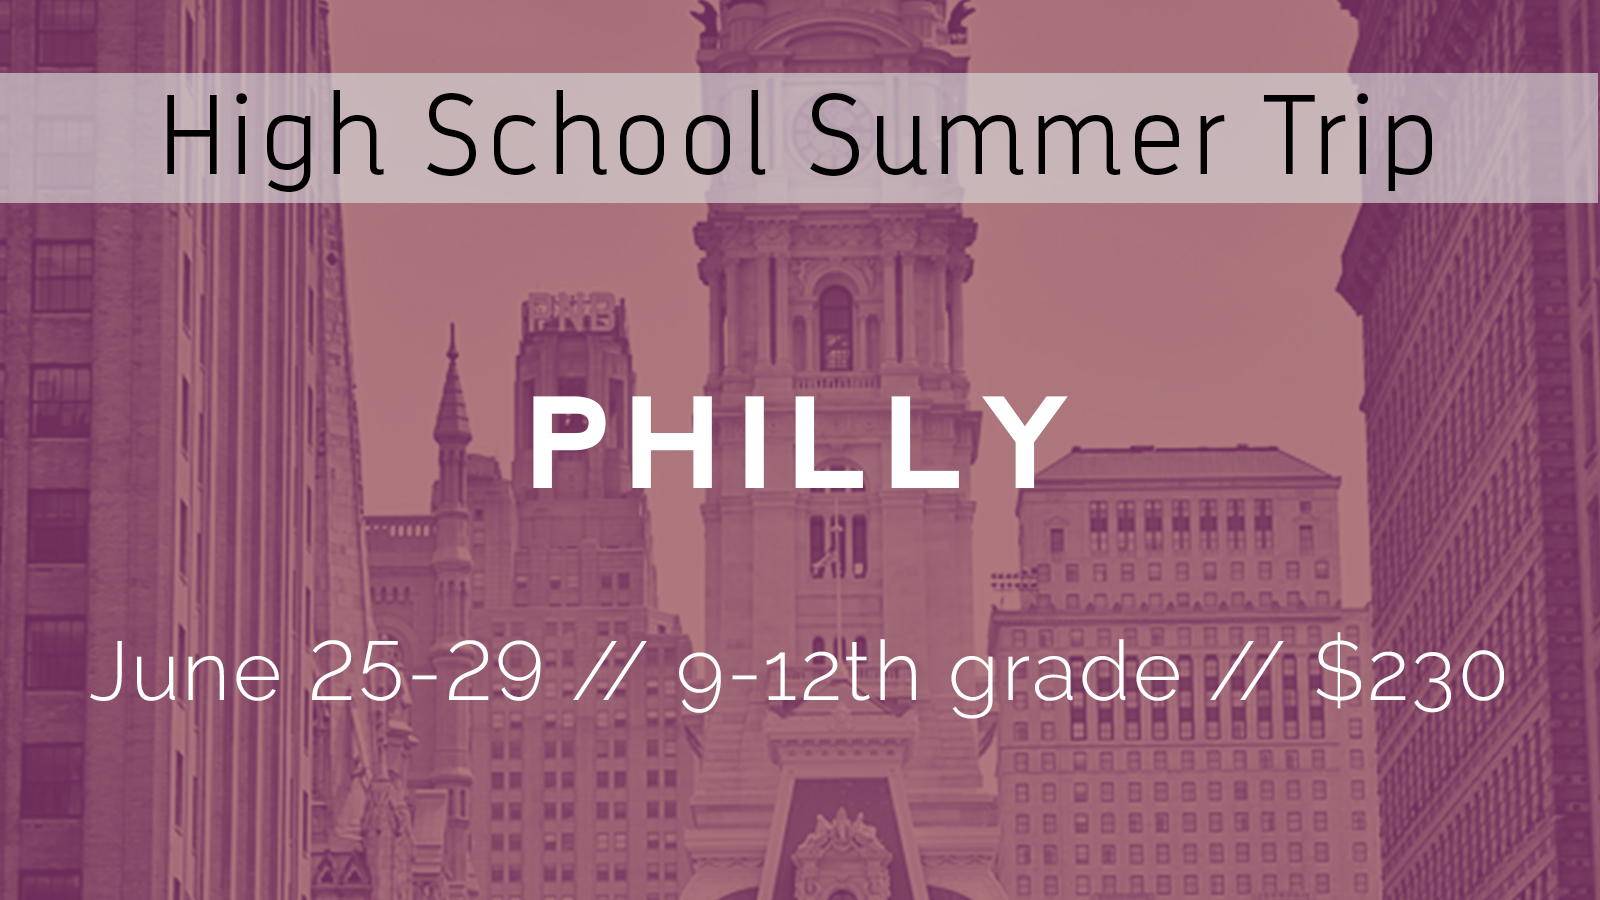 Hs philly large font